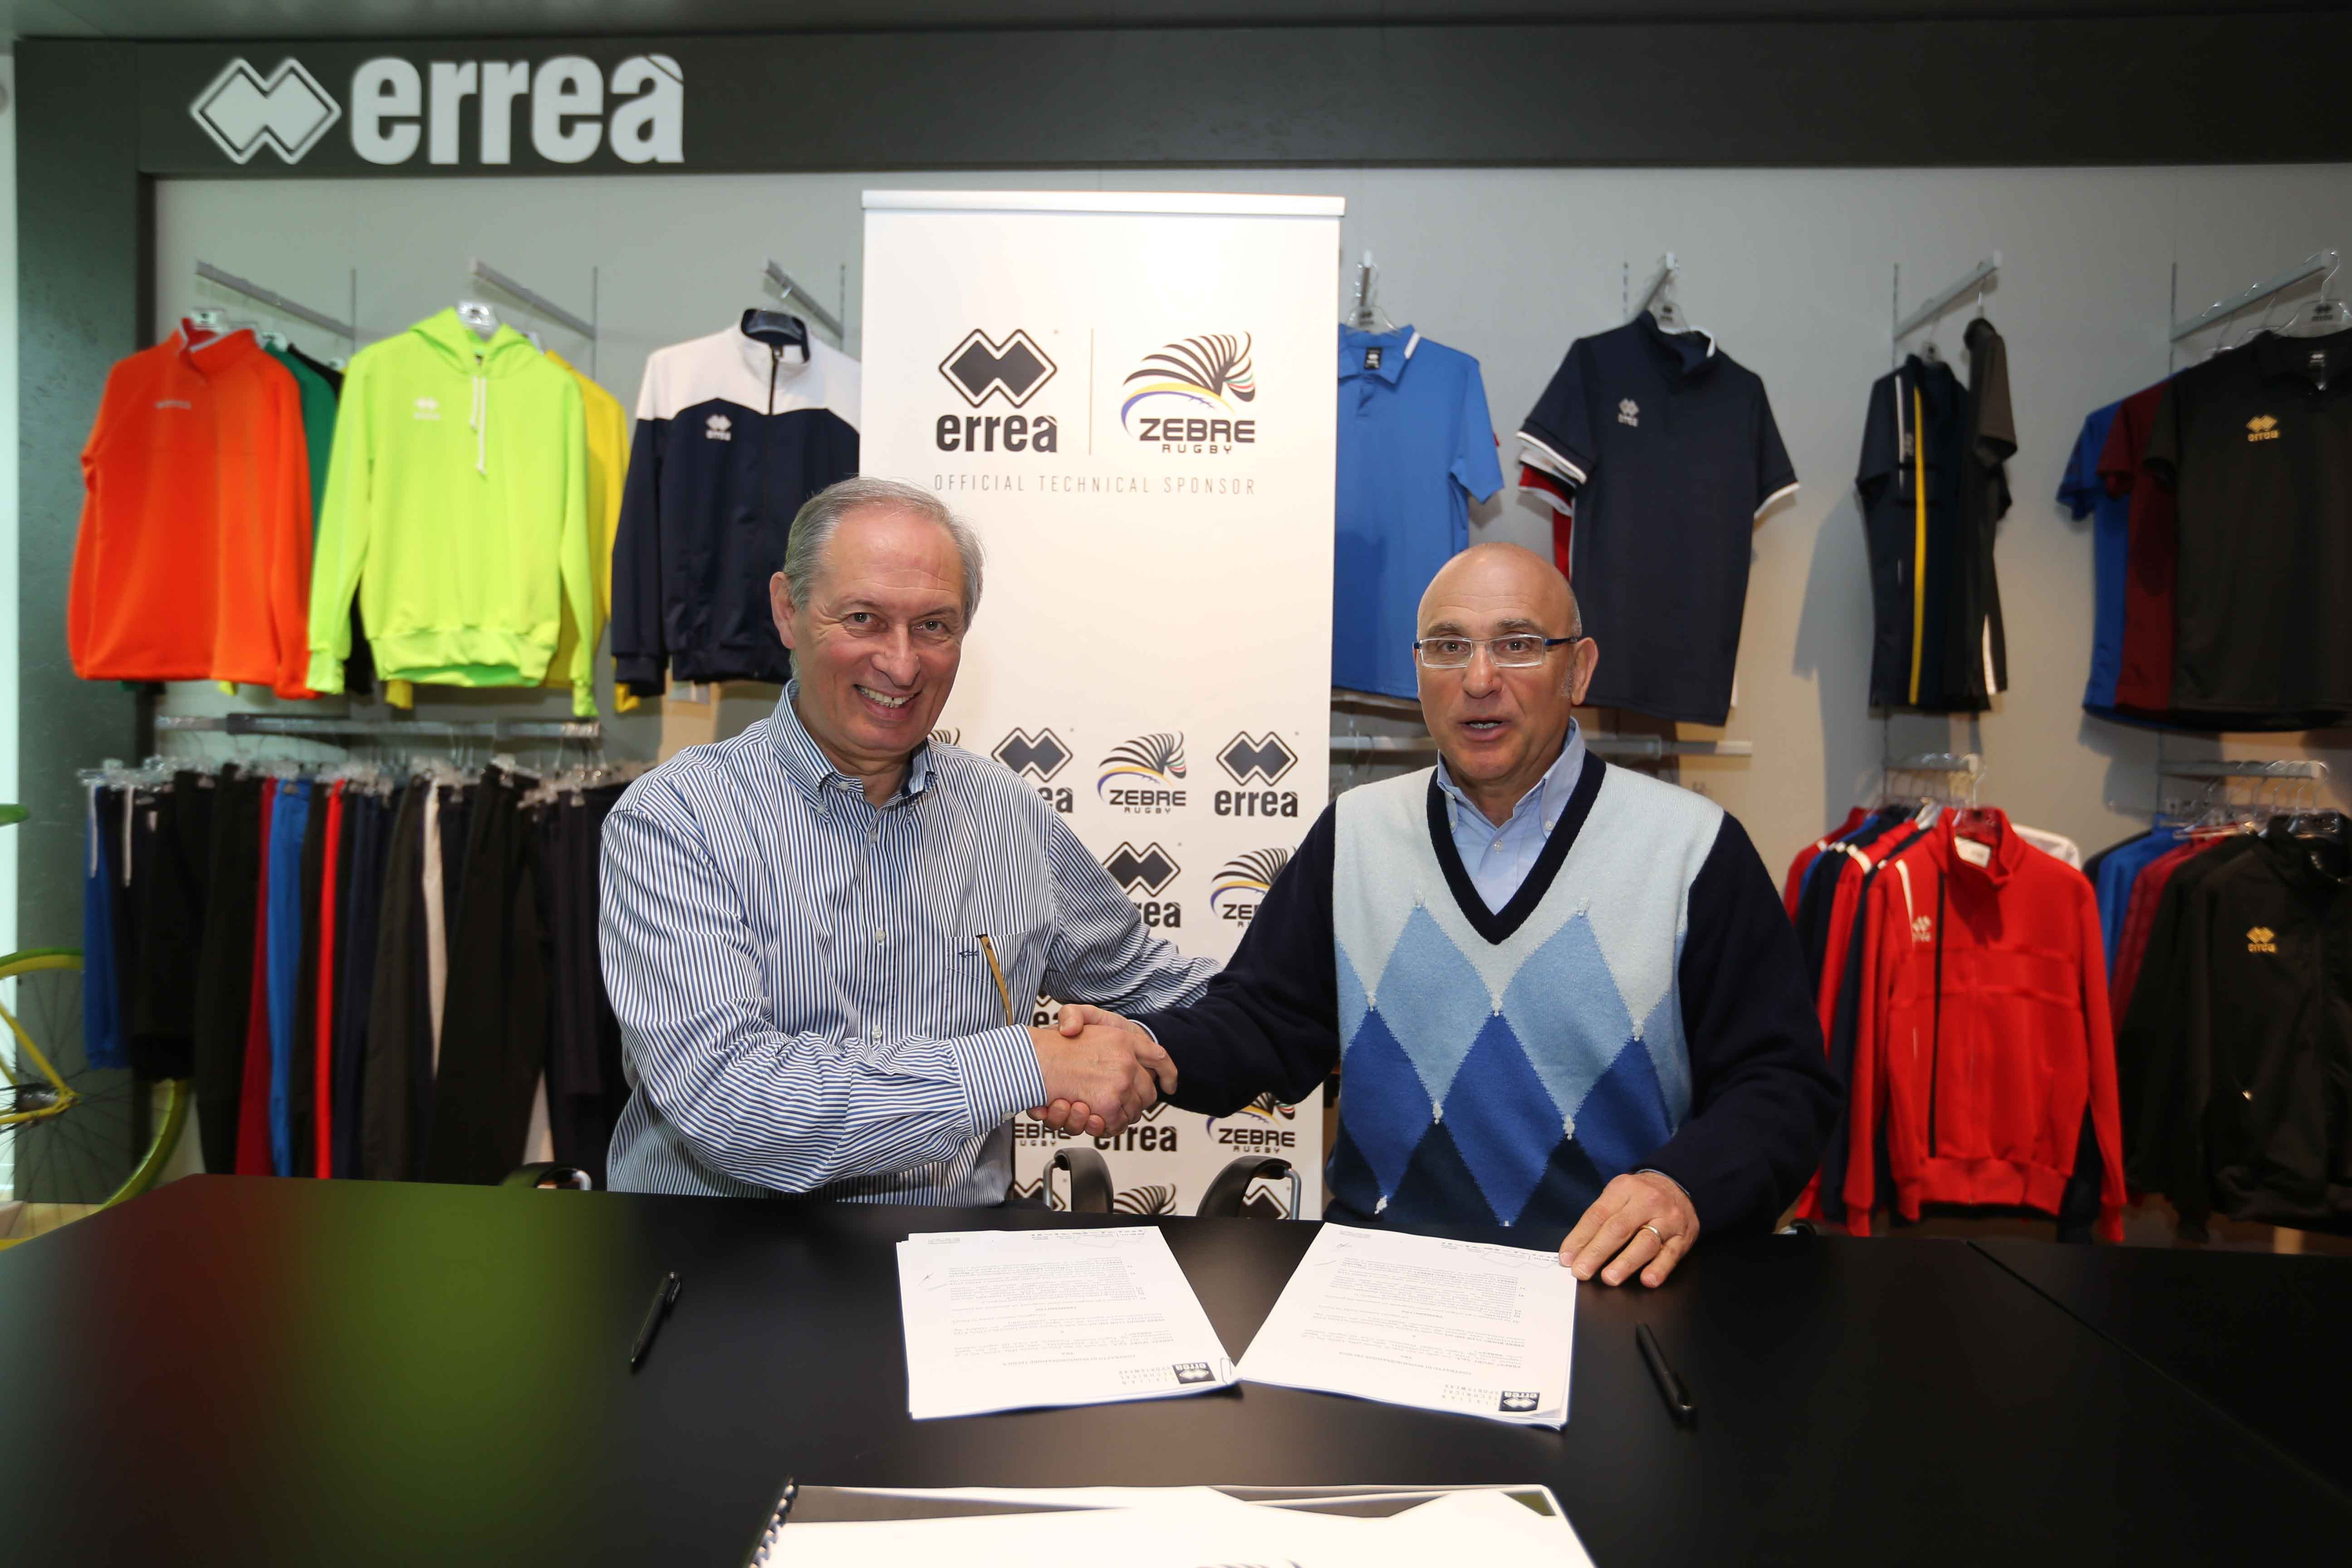 Erreà Sport will continue kitting out Zebre Rugby Club: the technical partnership agreement has been renewed!